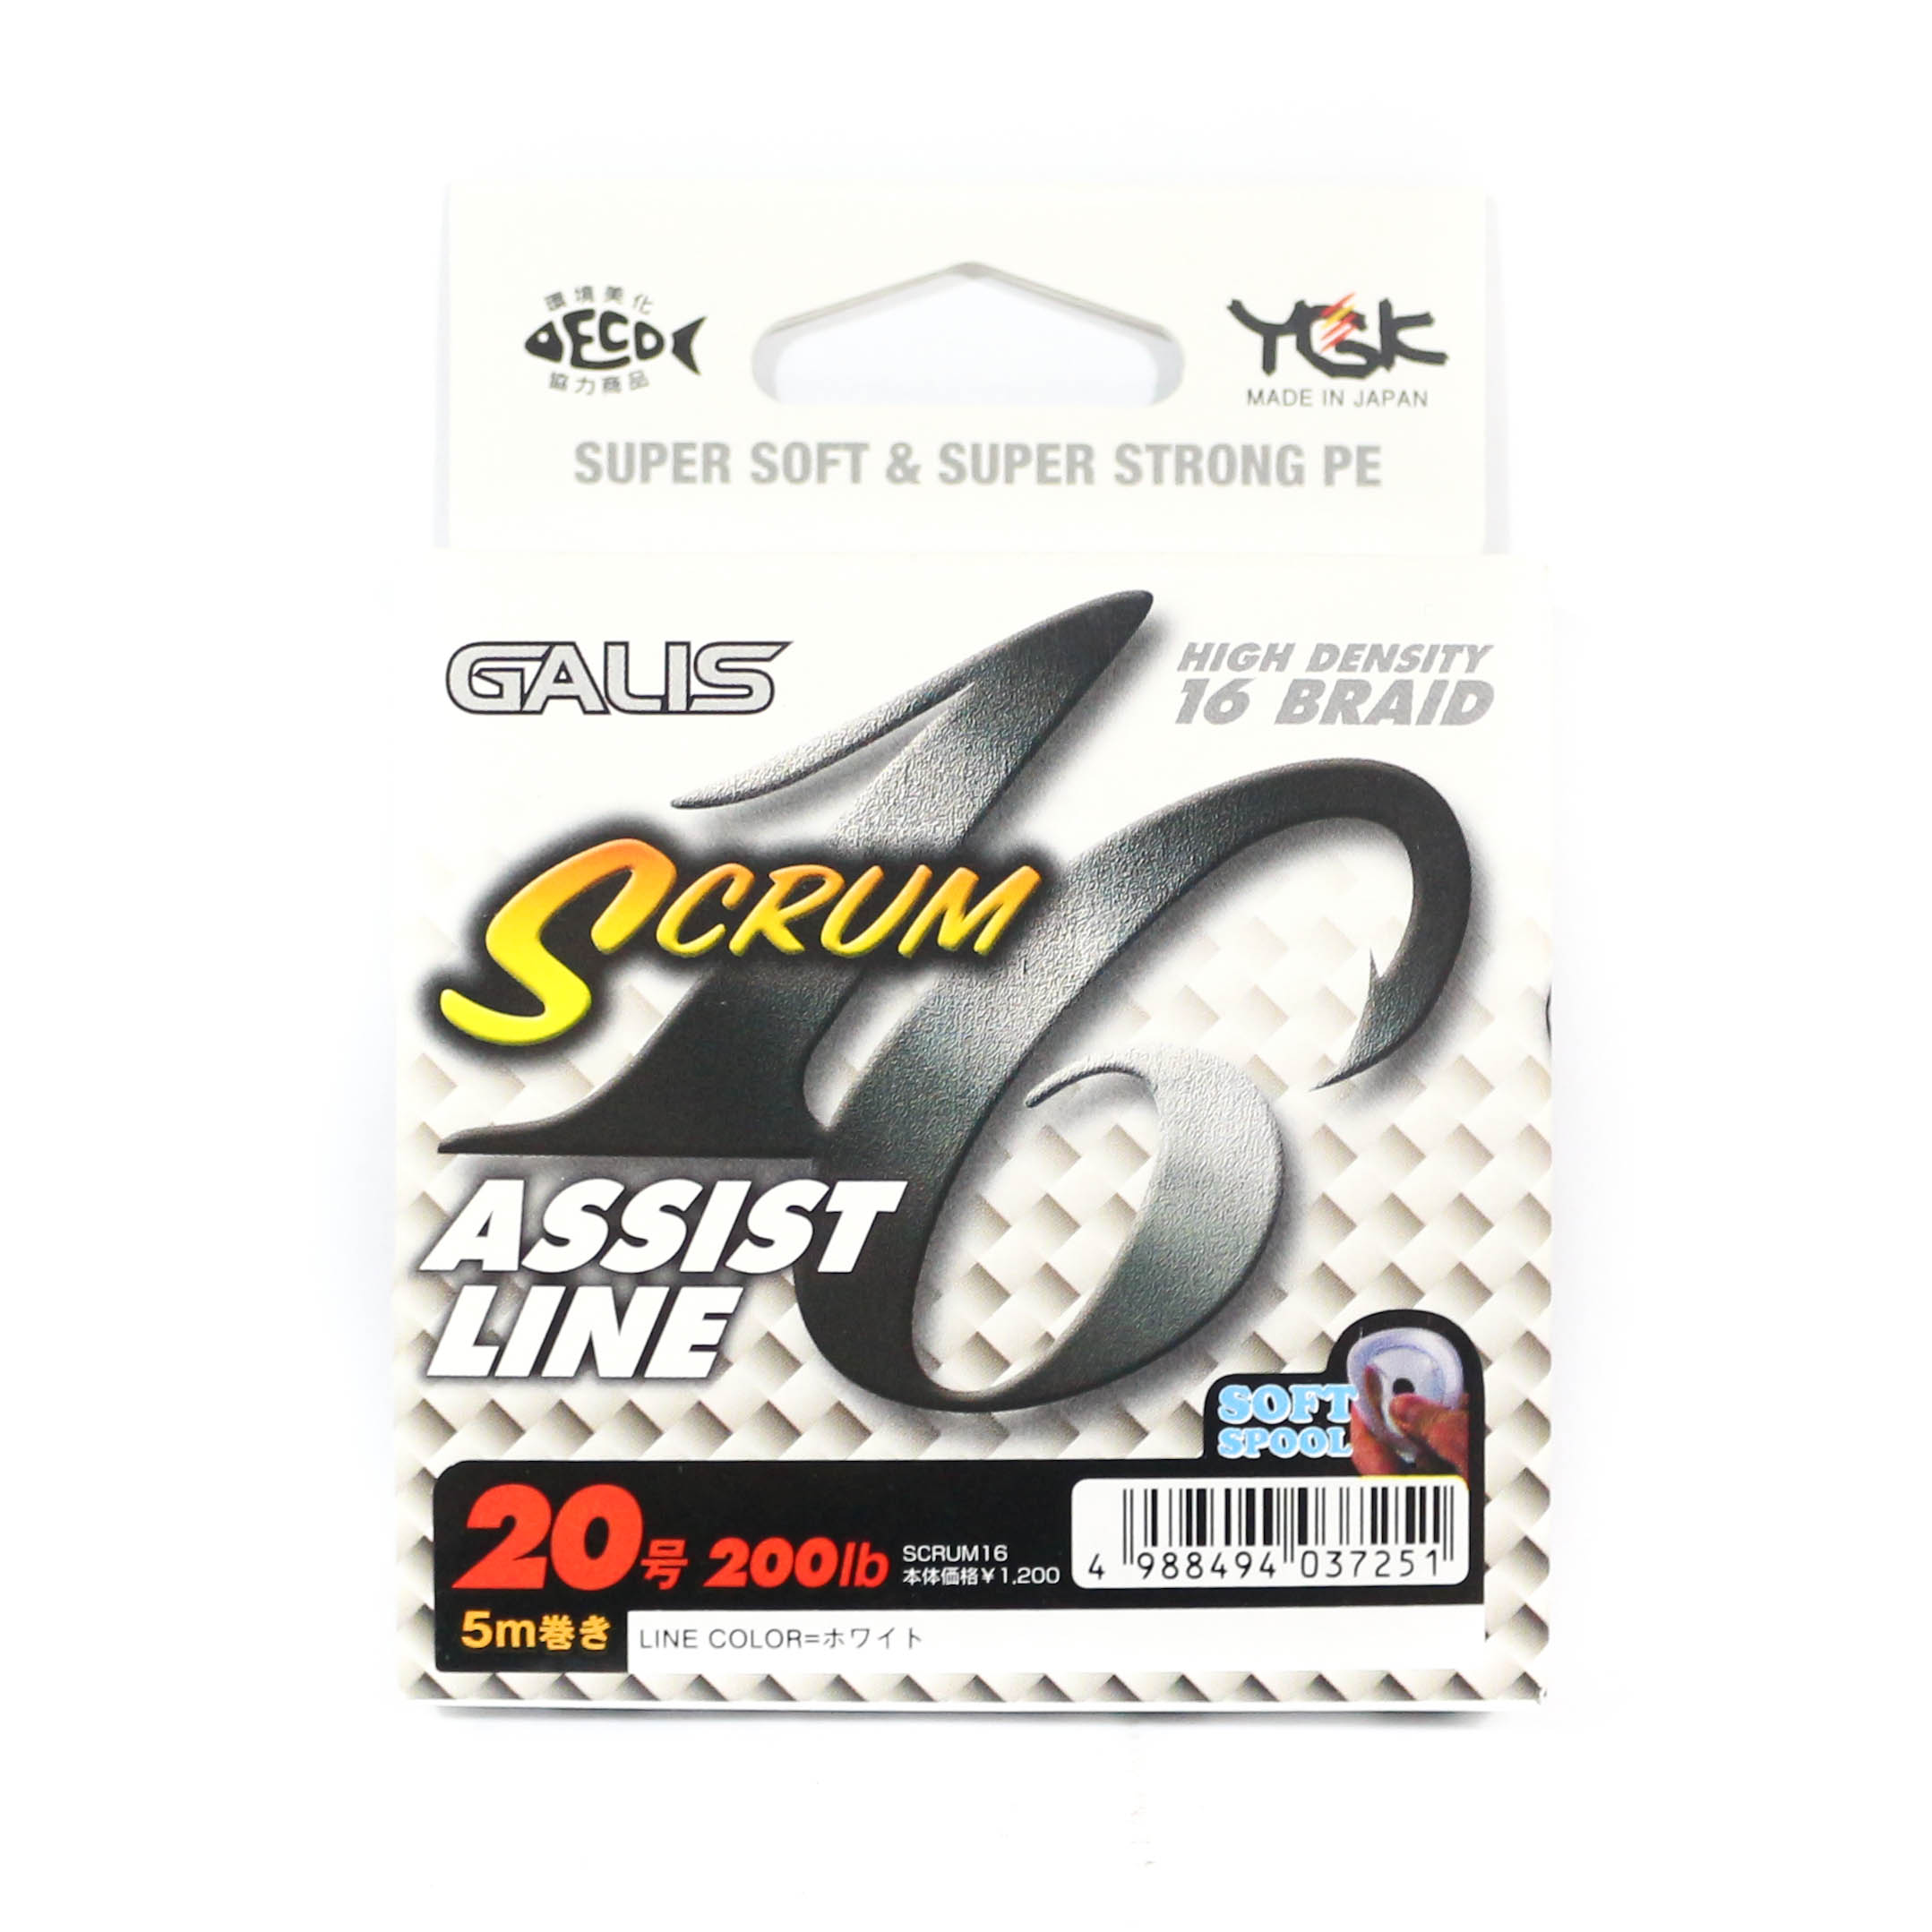 YGK Mini Rope for Assist Scrum High Density 16 Braid 5m 200lb White (7251)